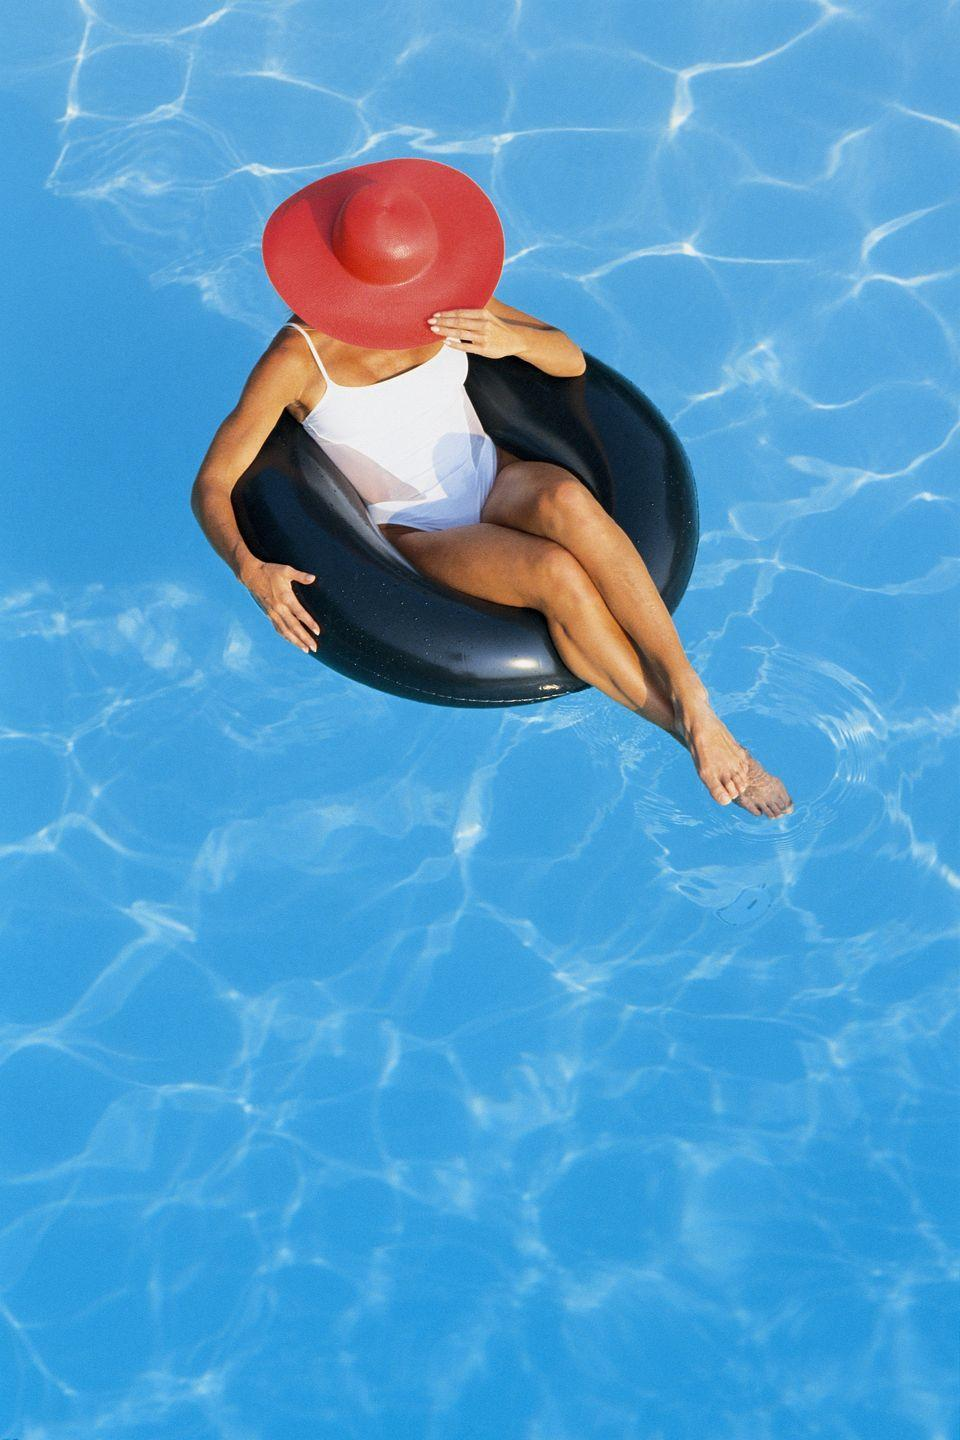 """<p>Celebrate the fourth while sitting in a <a href=""""https://www.goodhousekeeping.com/home-products/g4344/pool-floats-for-adults/"""" rel=""""nofollow noopener"""" target=""""_blank"""" data-ylk=""""slk:pool float"""" class=""""link rapid-noclick-resp"""">pool float</a> with a drink in hand! It's the perfect way to spend a sunny day with the whole family. </p><p><strong>RELATED: </strong><a href=""""https://www.goodhousekeeping.com/home-products/g5095/swimming-pool-games/"""" rel=""""nofollow noopener"""" target=""""_blank"""" data-ylk=""""slk:15 Ultimate Swimming Pool Games to Play This Summer"""" class=""""link rapid-noclick-resp"""">15 Ultimate Swimming Pool Games to Play This Summer</a> </p>"""